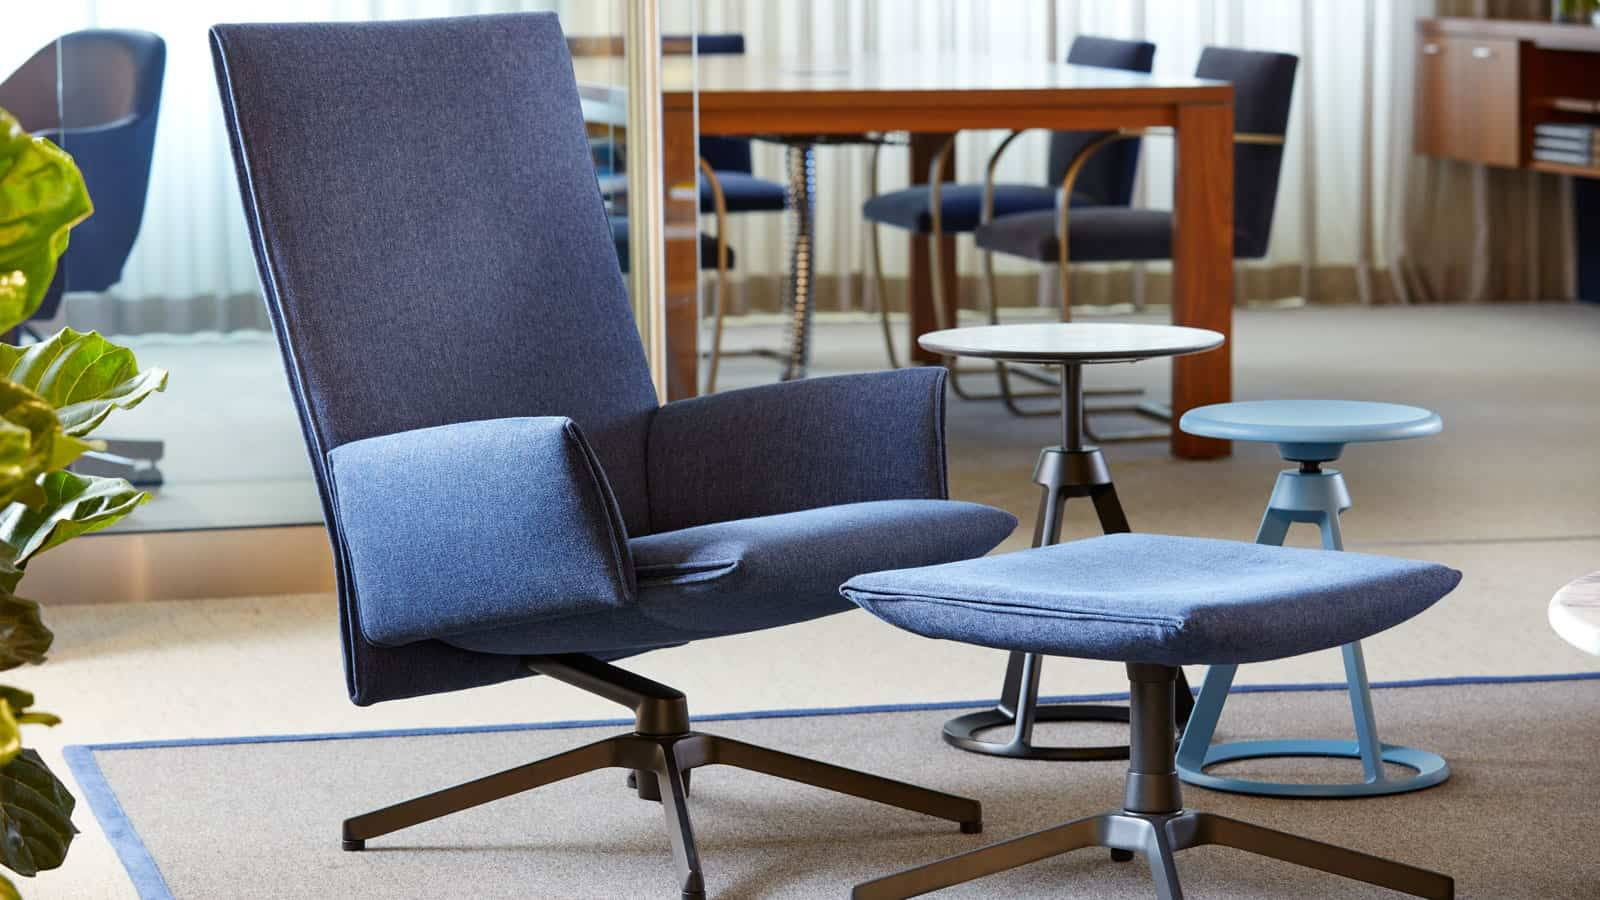 contemporary design furniture by Edward Barber and Jay Osgerby for Knoll